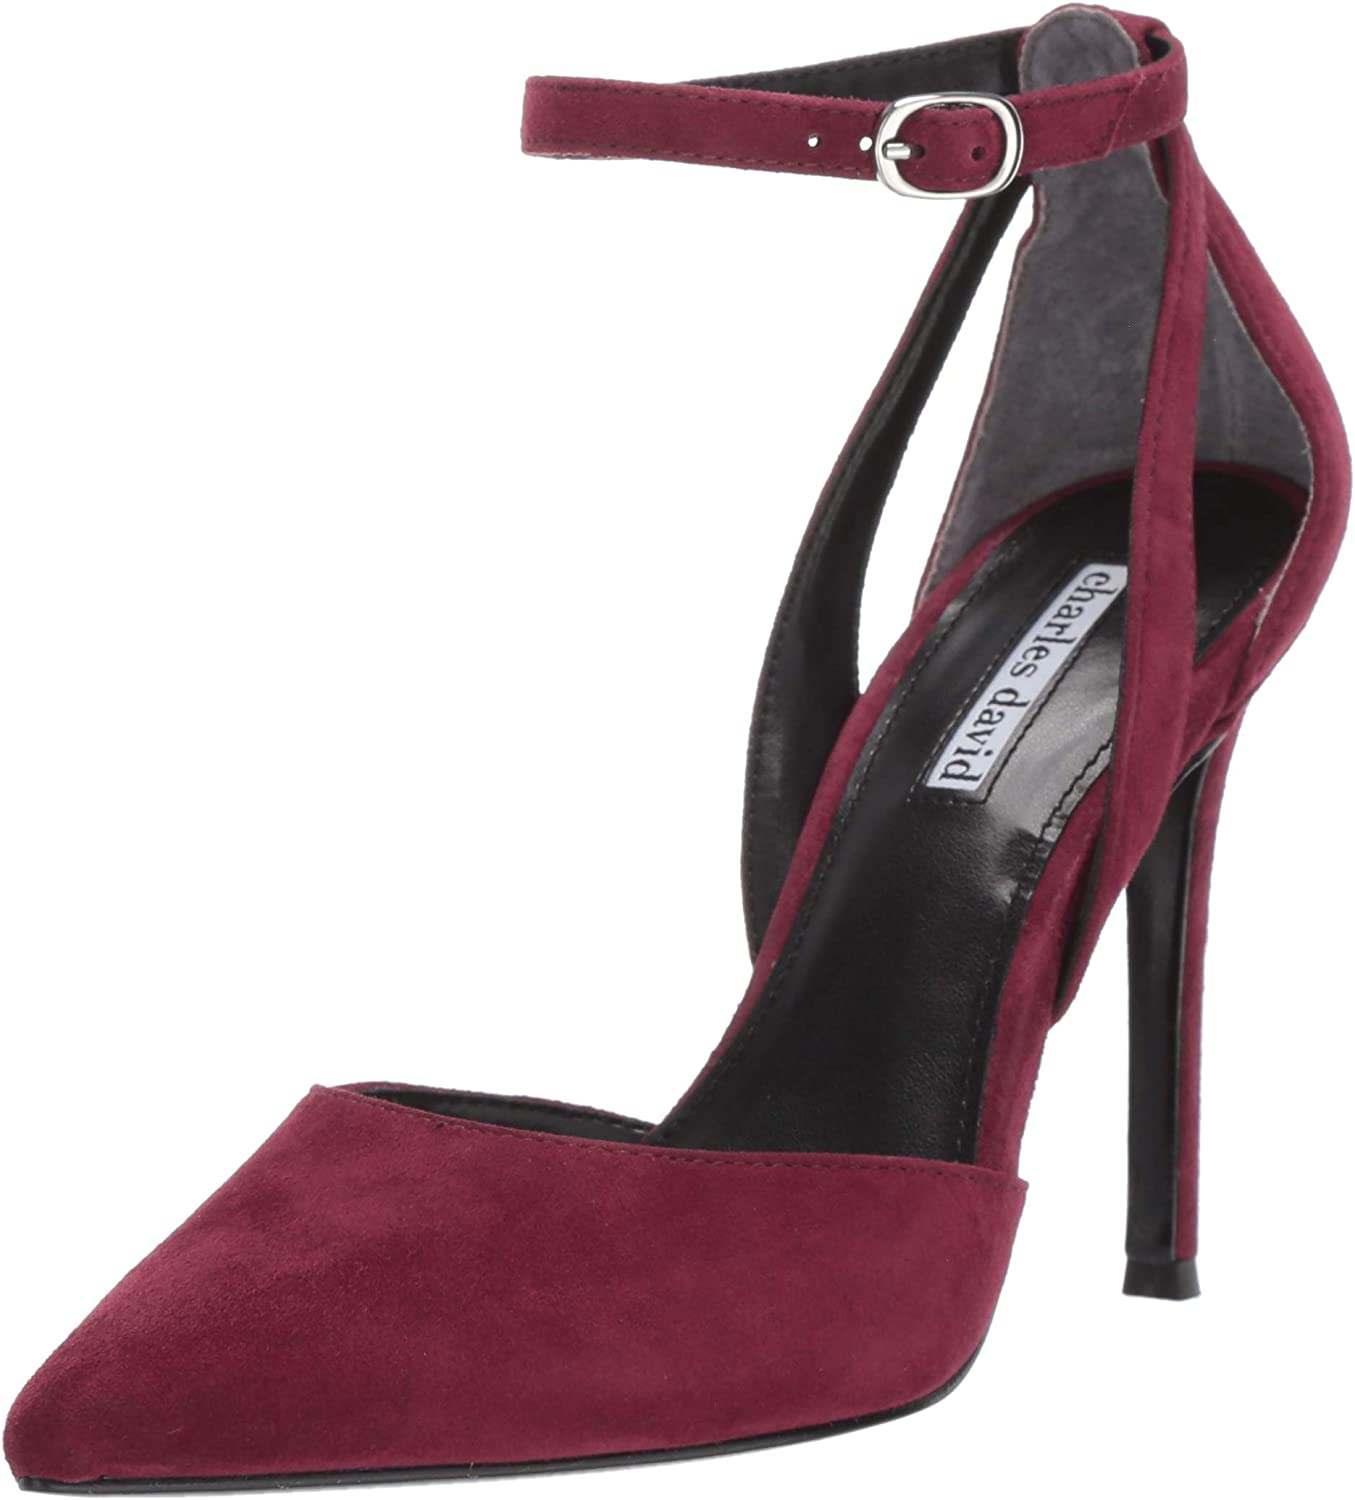 Charles David Women's Cordelia Pump